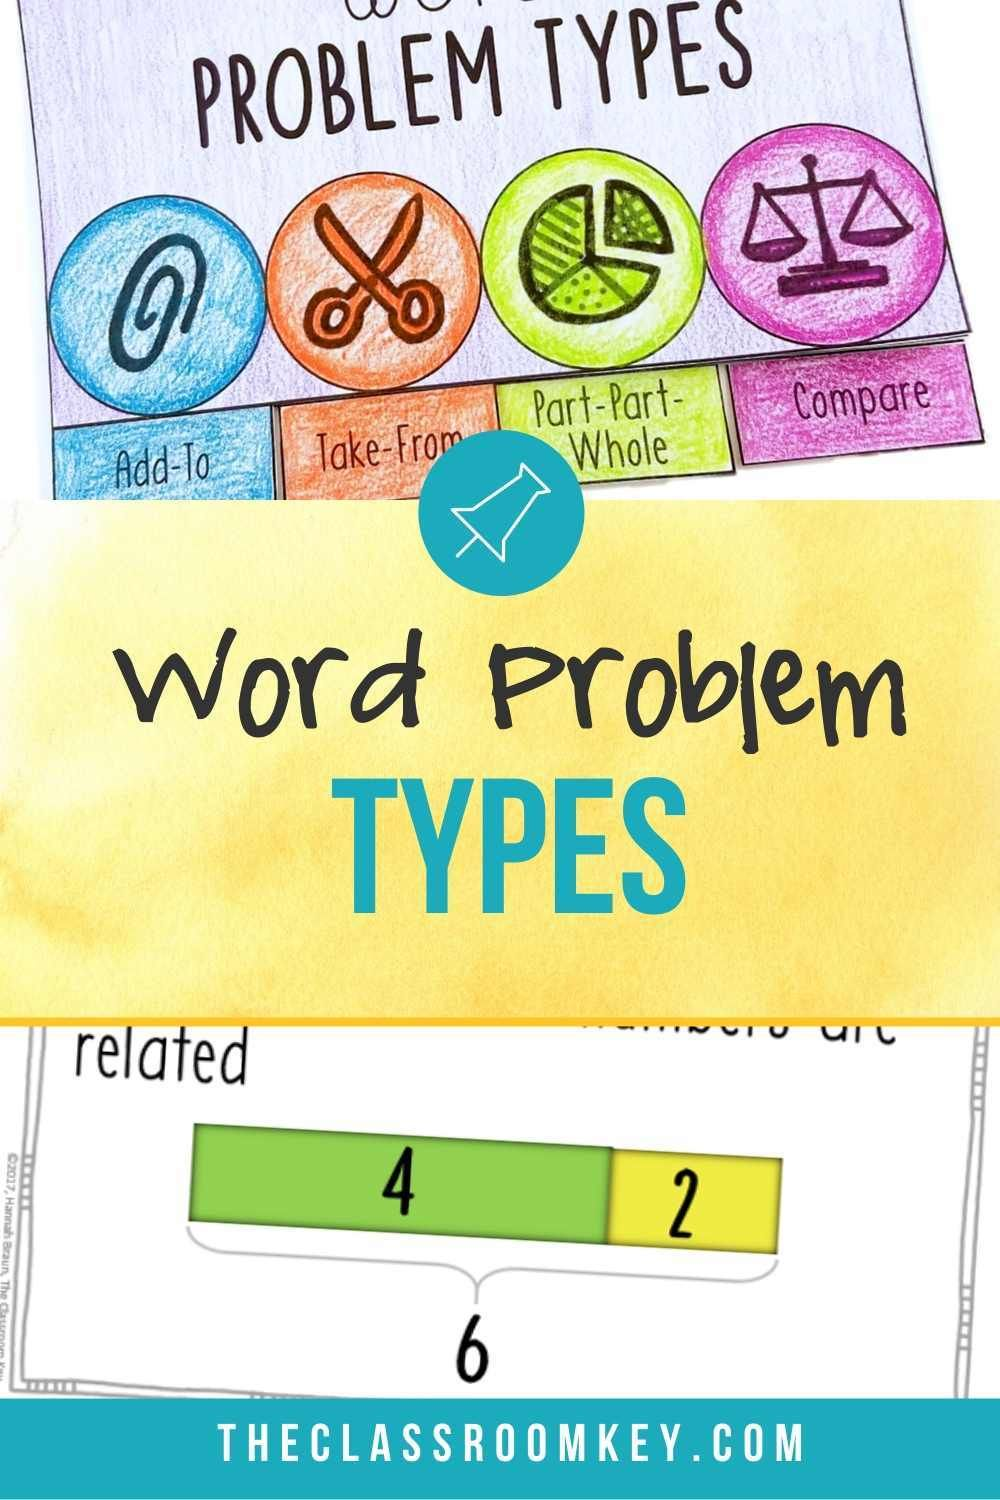 Word Problem Types Word Problems Math Words Math Word Problems Addition without carrying is called